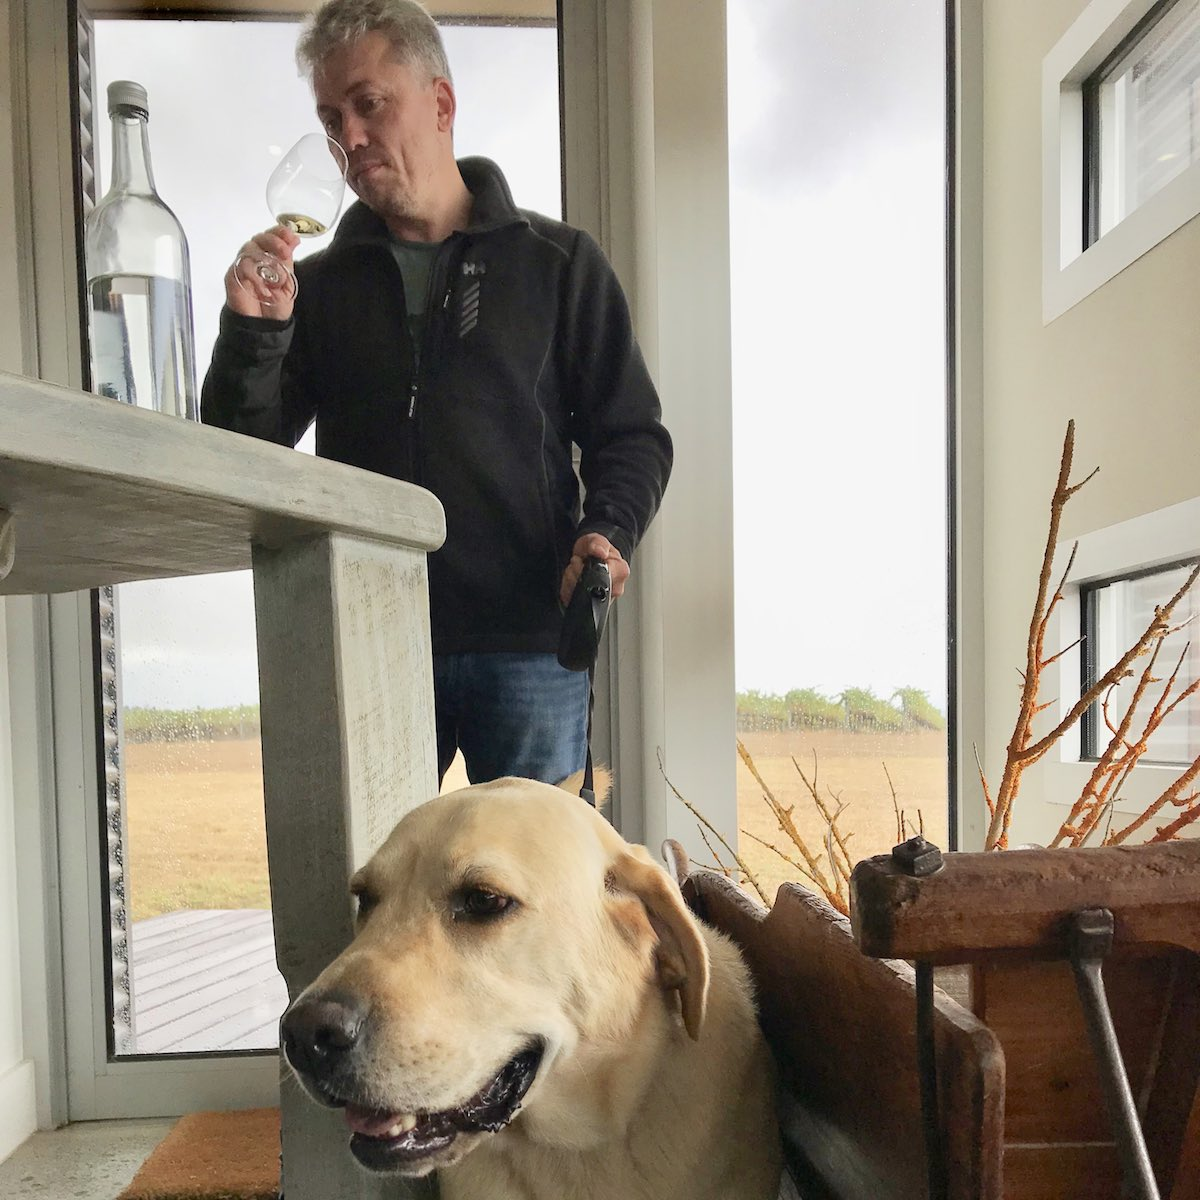 Labrador on a pooches and pinot dog wine tour at Maddens Rise cellar door